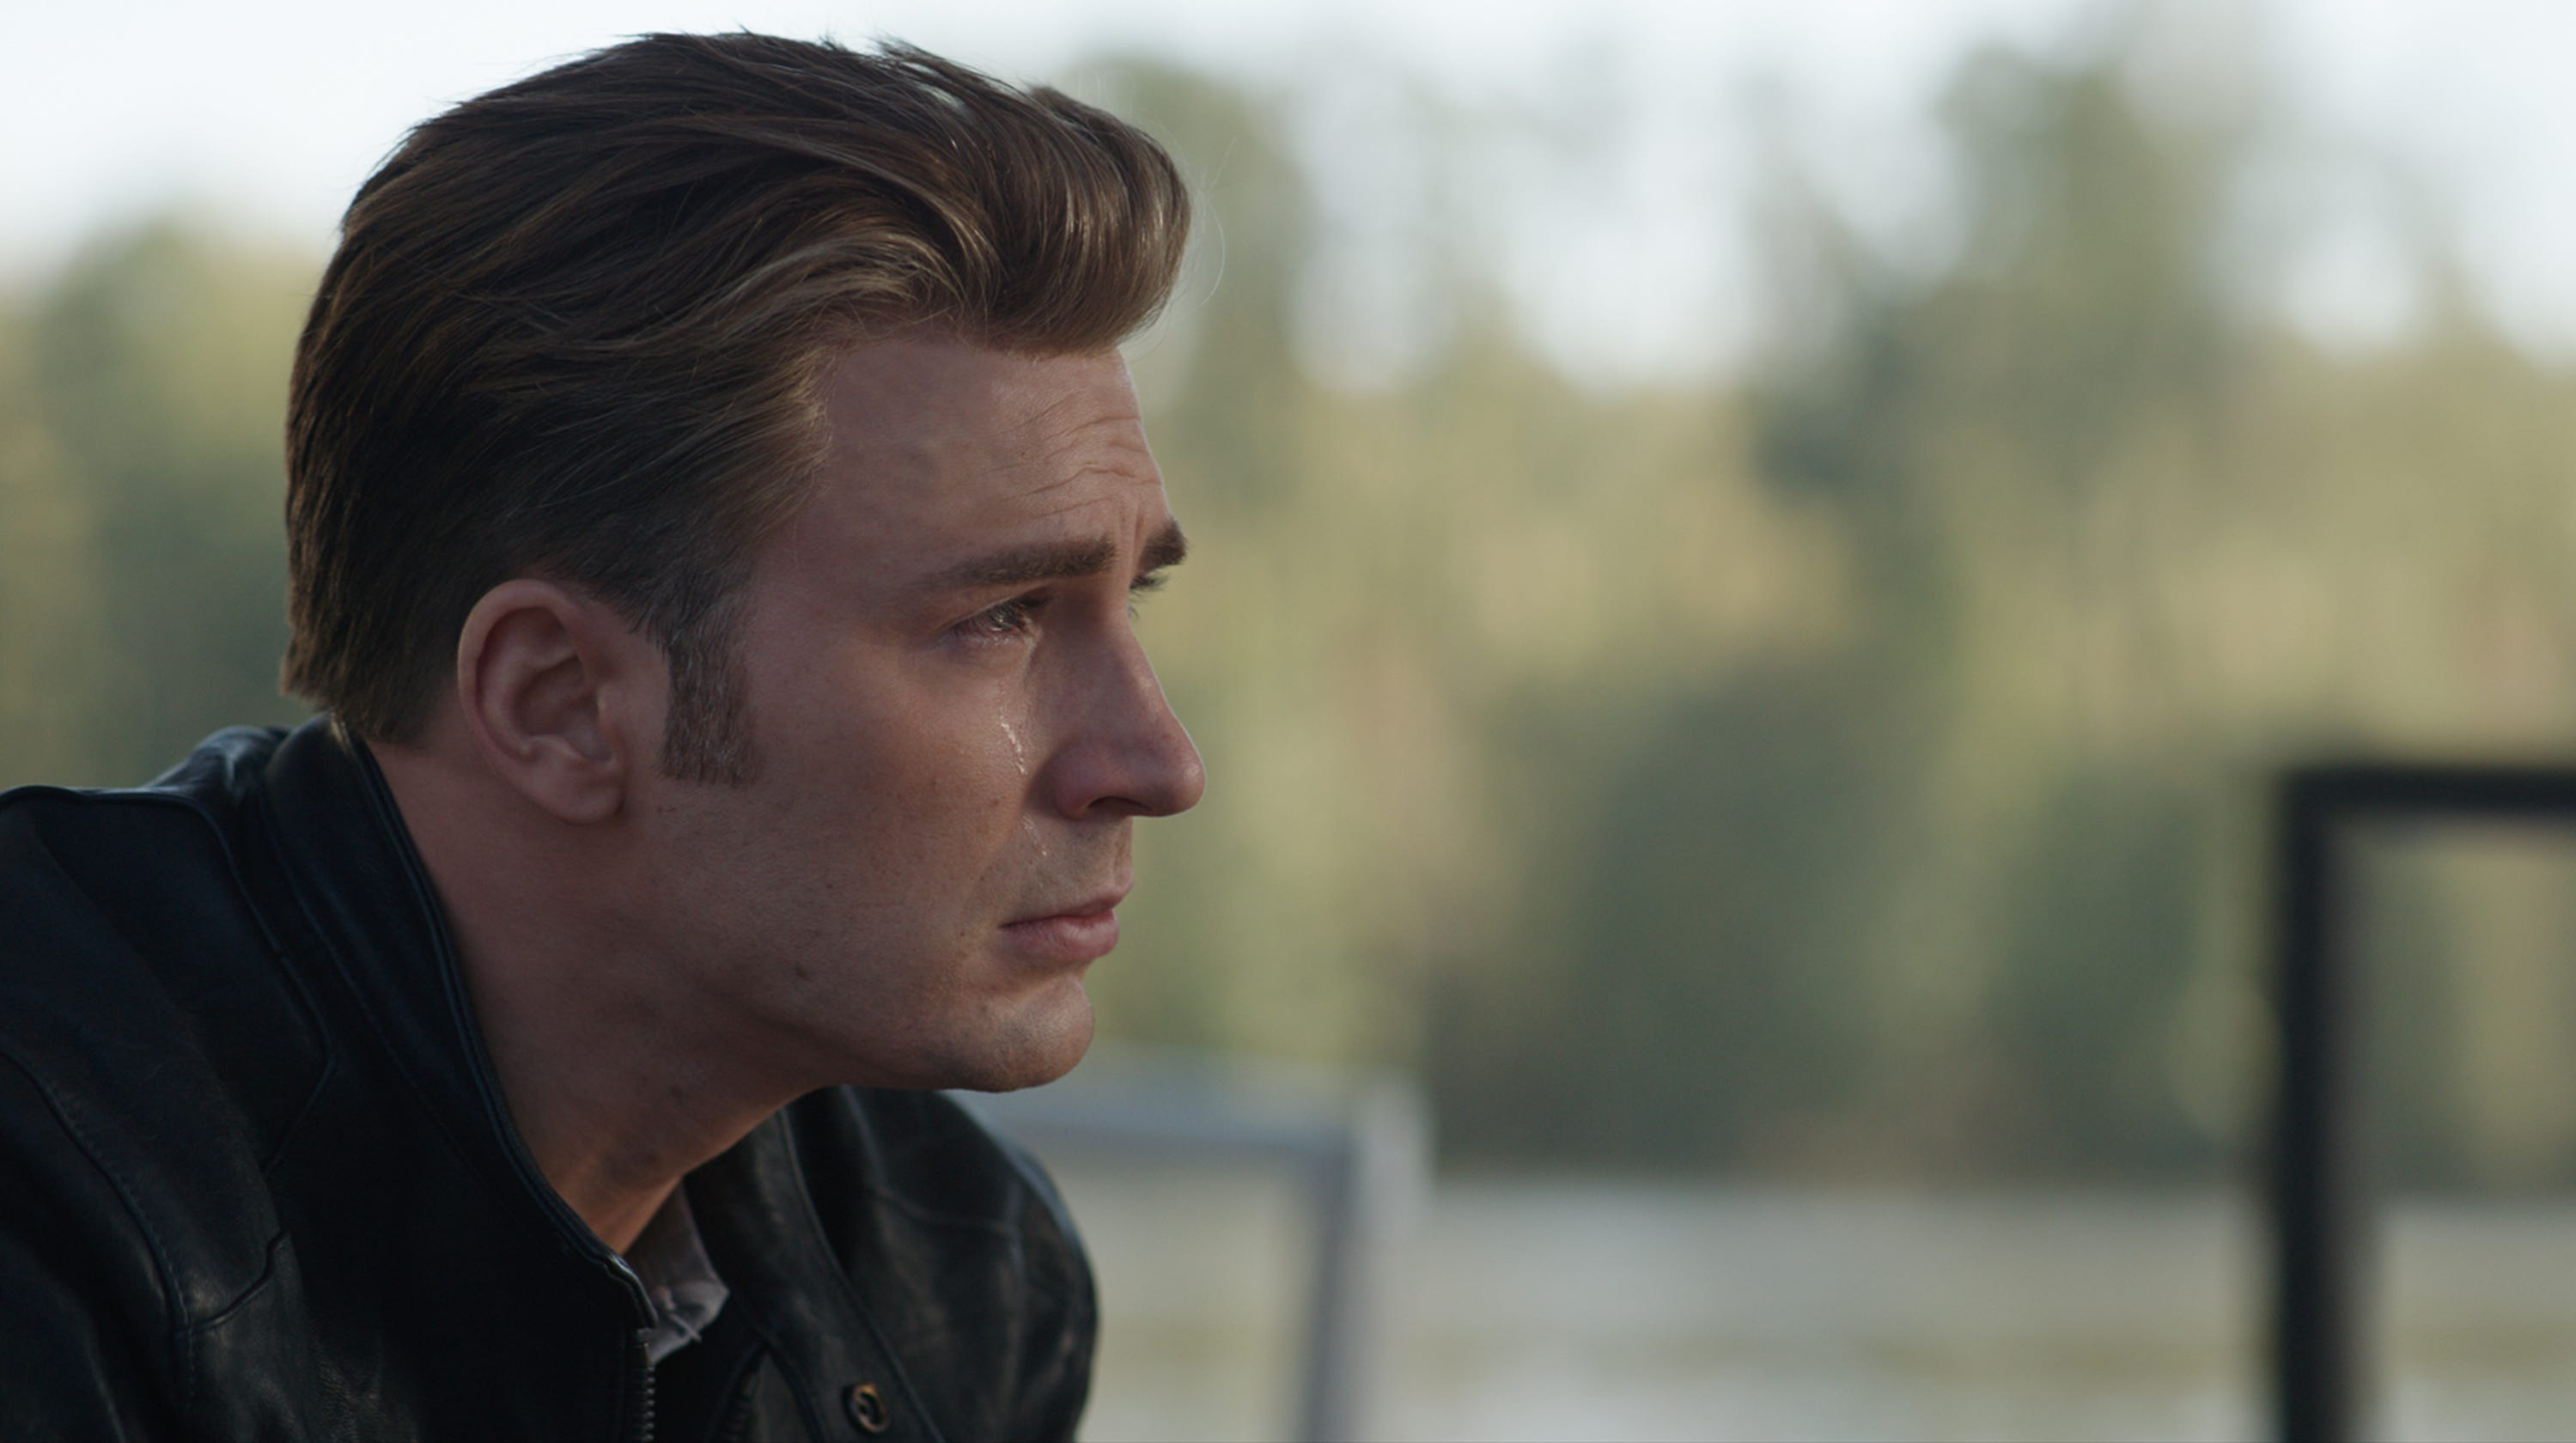 767cffadc0a80 'Avengers: Endgame': In fact, Captain America does have America's butt